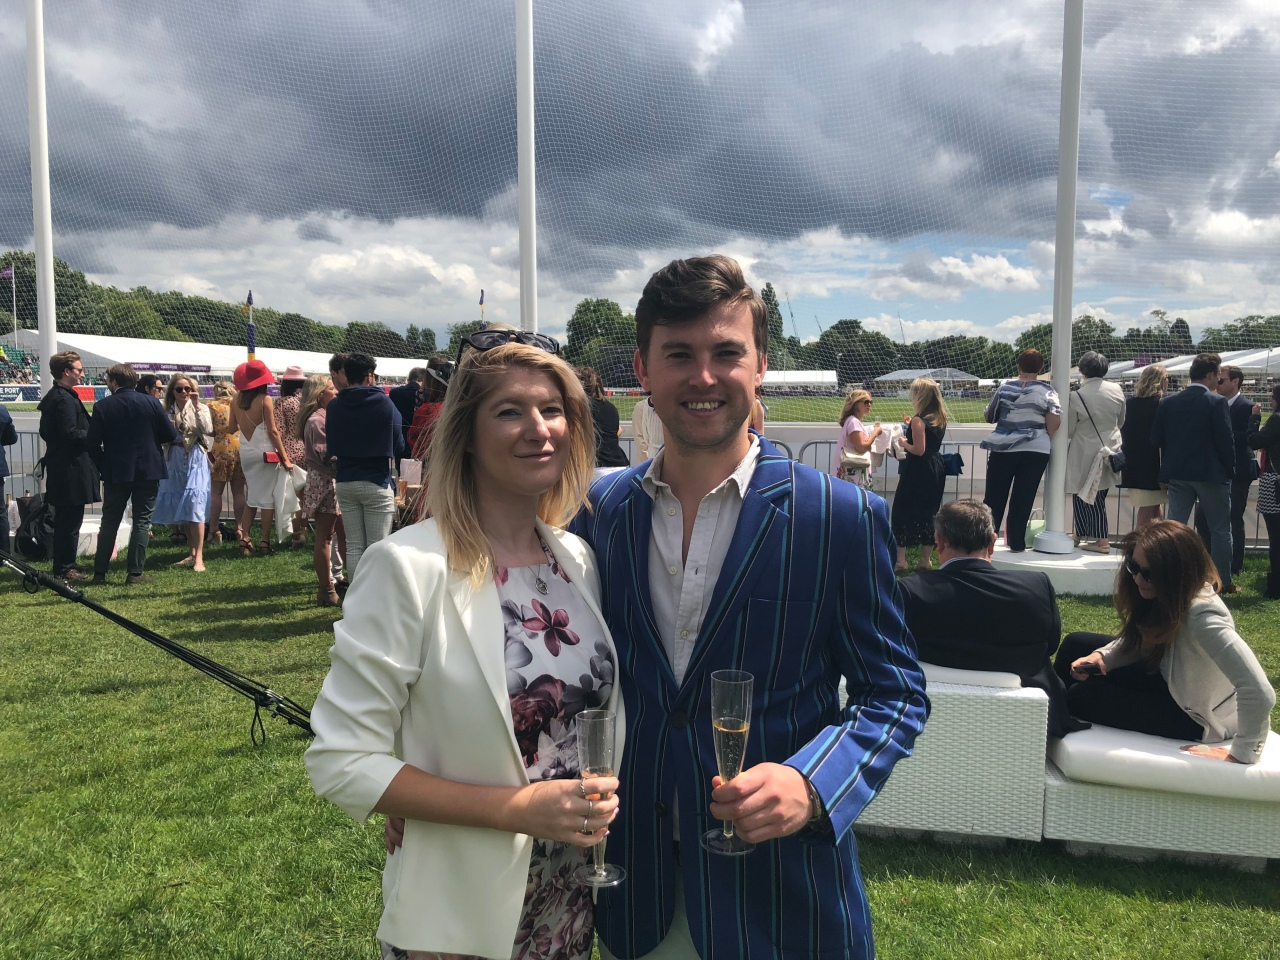 Couple at polo in the park